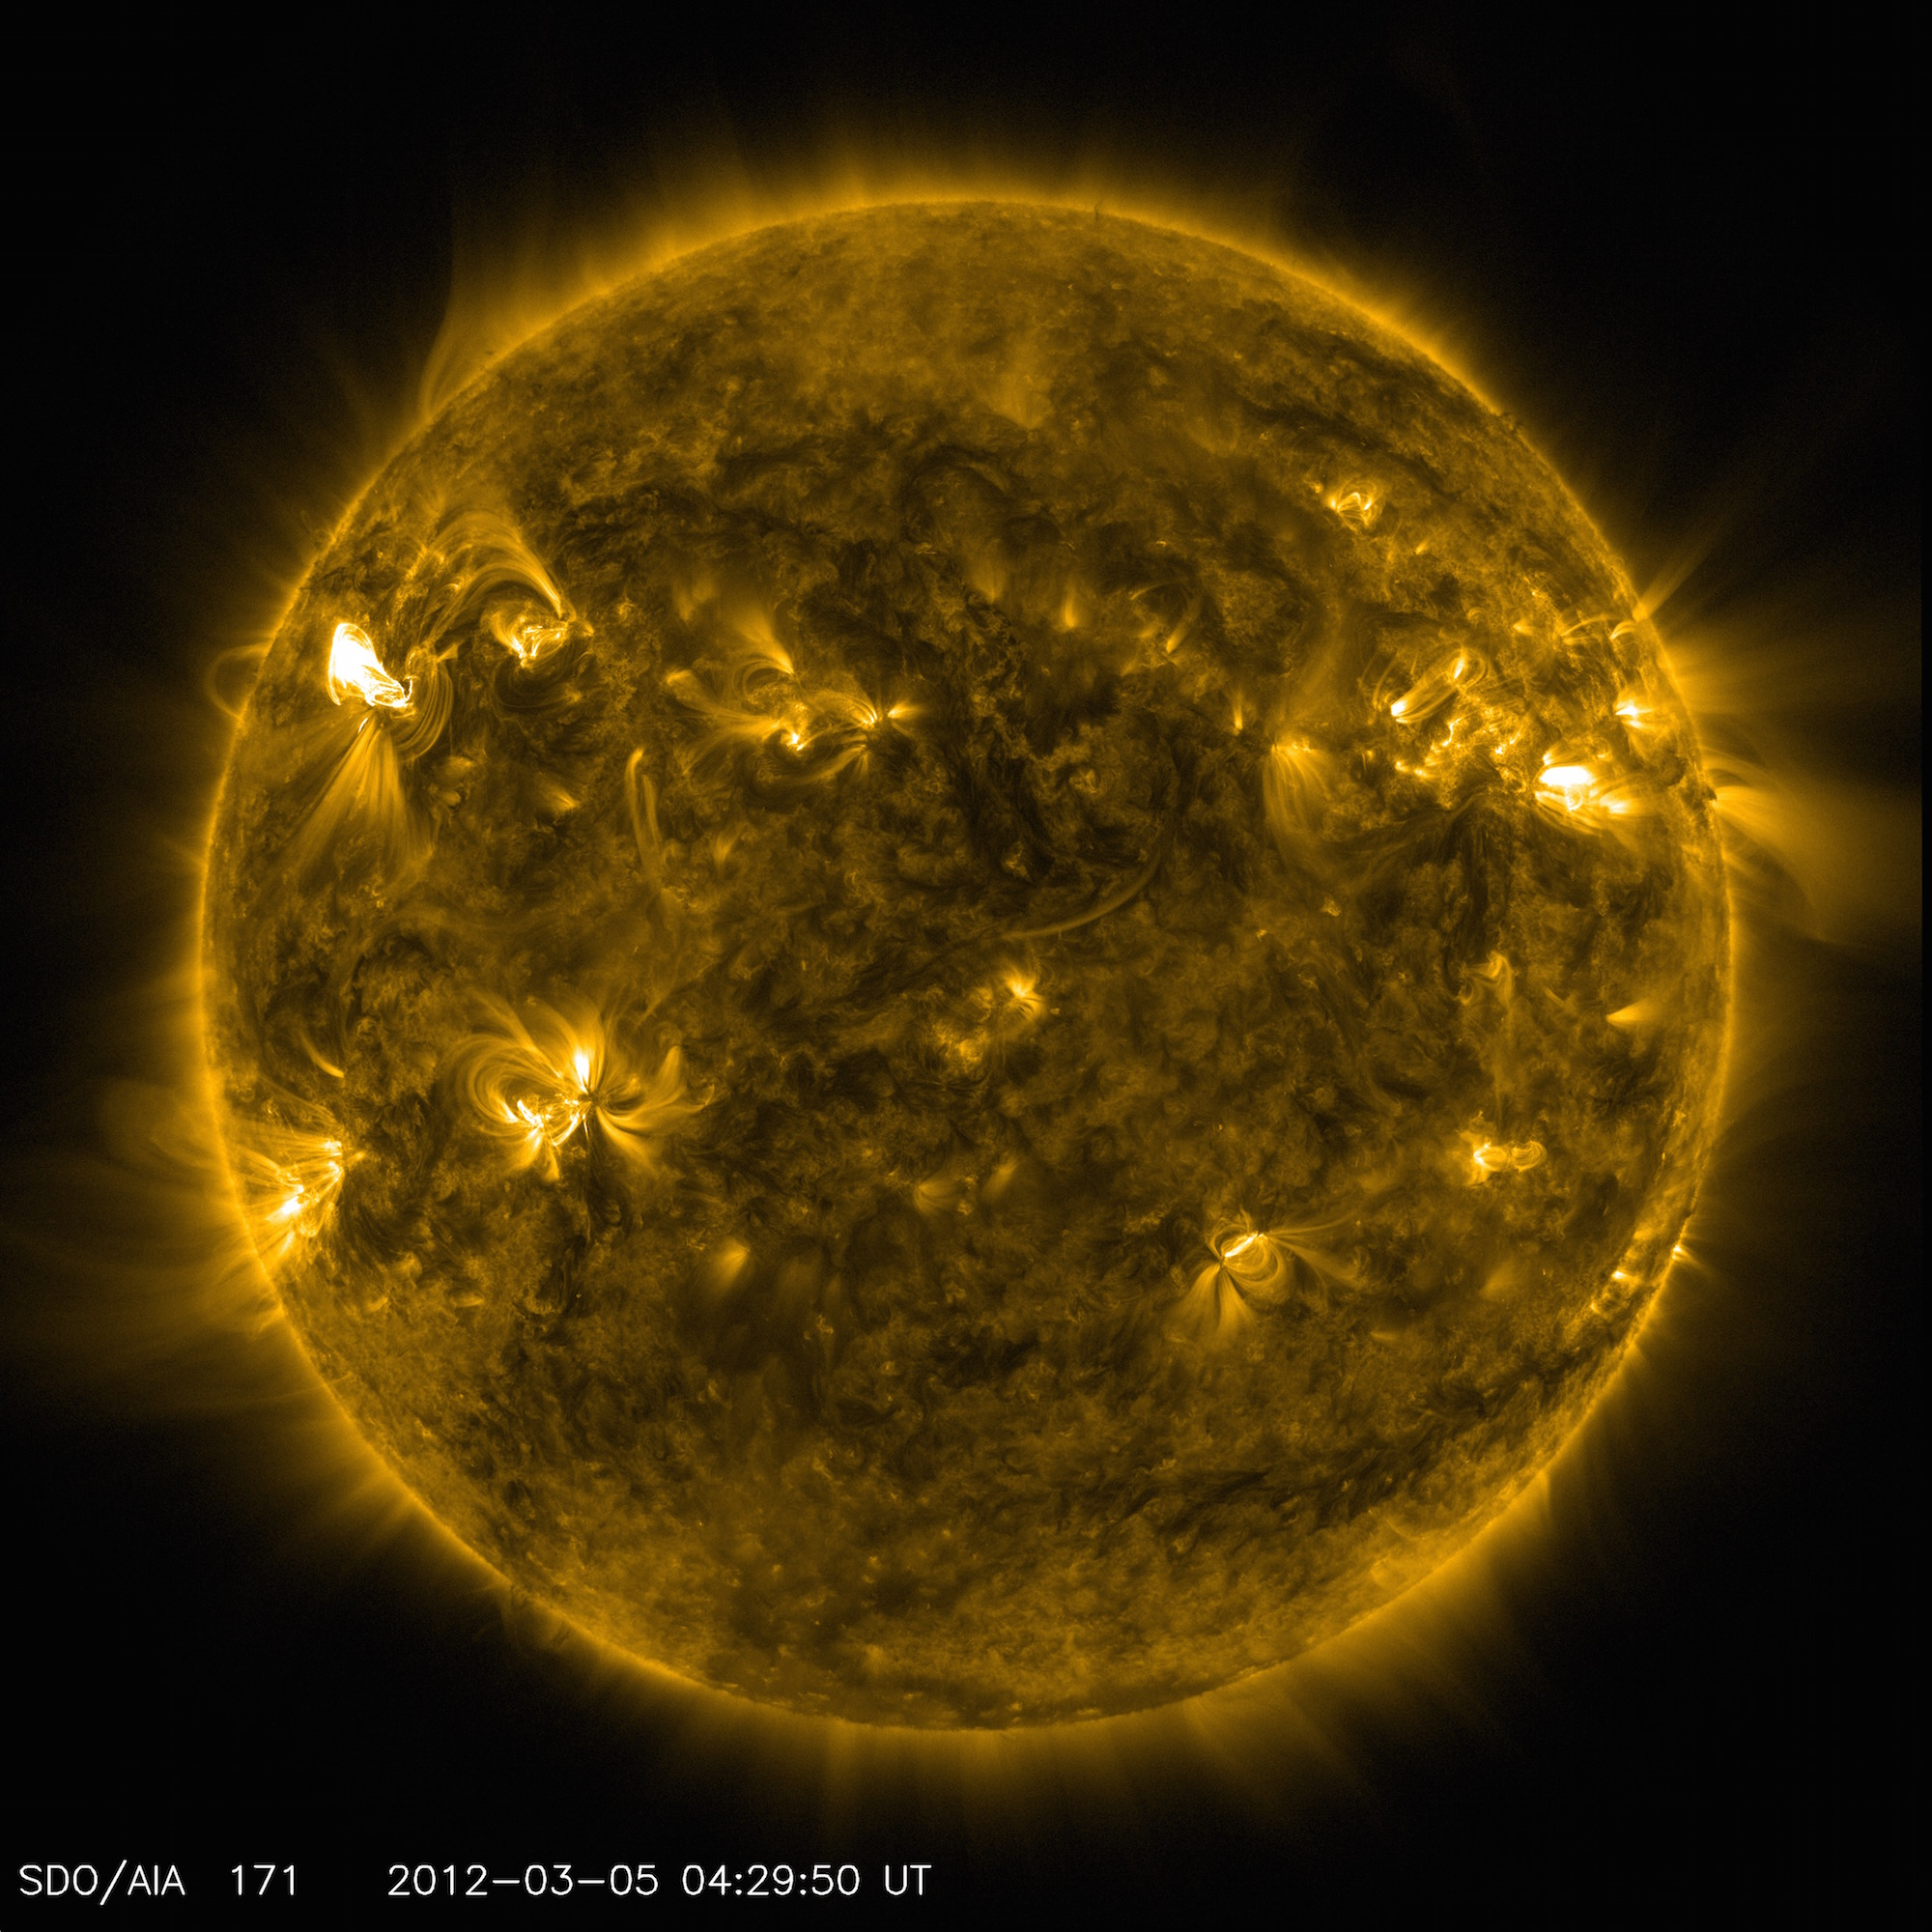 An image of active regions on the Sun from NASA's Solar Dynamics Observatory. The glowing hot gas traces out the twists and loops of the Sun's magnetic field lines. Image credit: NASA/SDO/AIA